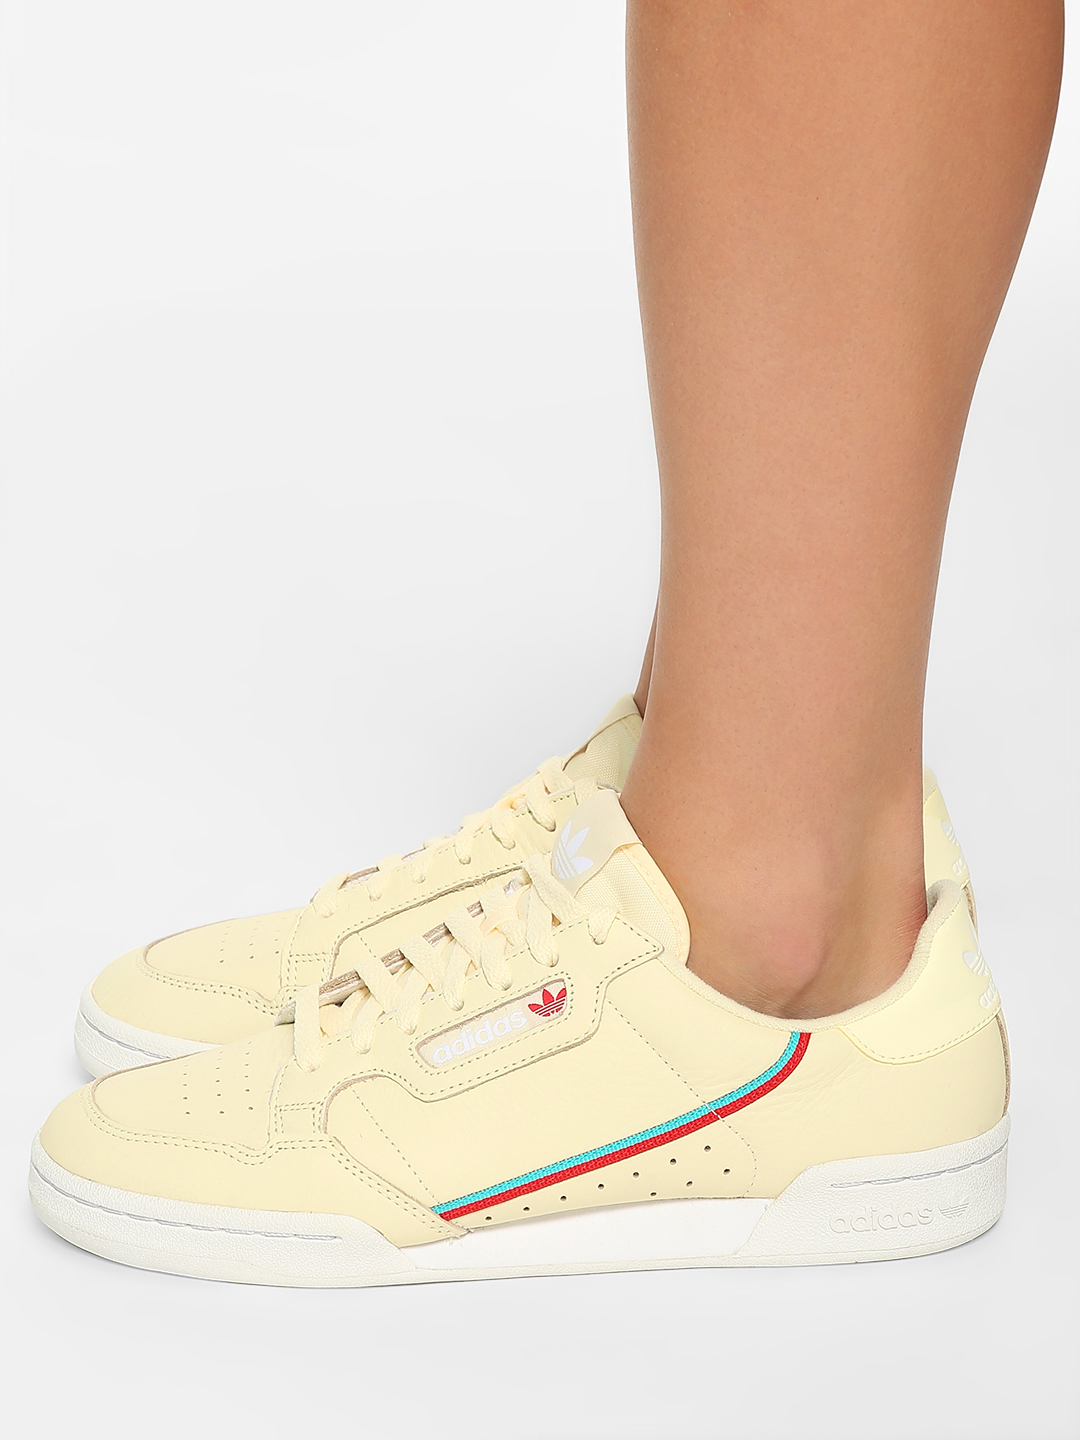 Adidas Originals Multi Continental 80 Shoes 1